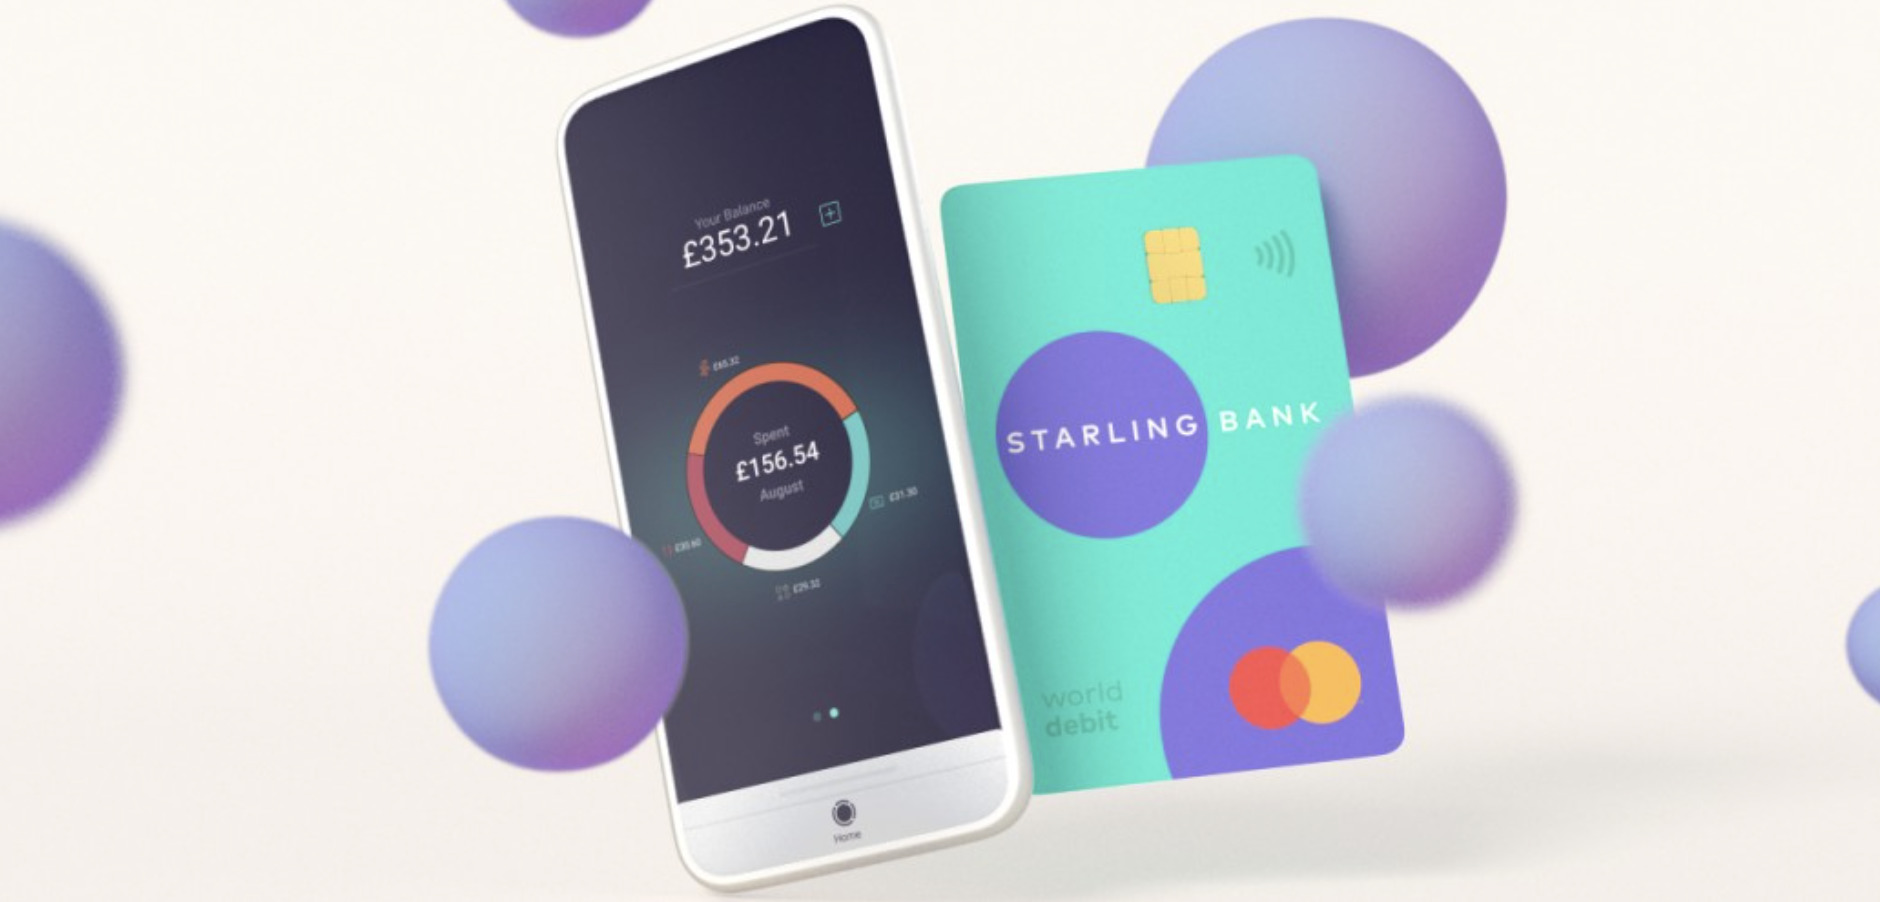 Starling Bank Review – Is It Worth Signing Up?